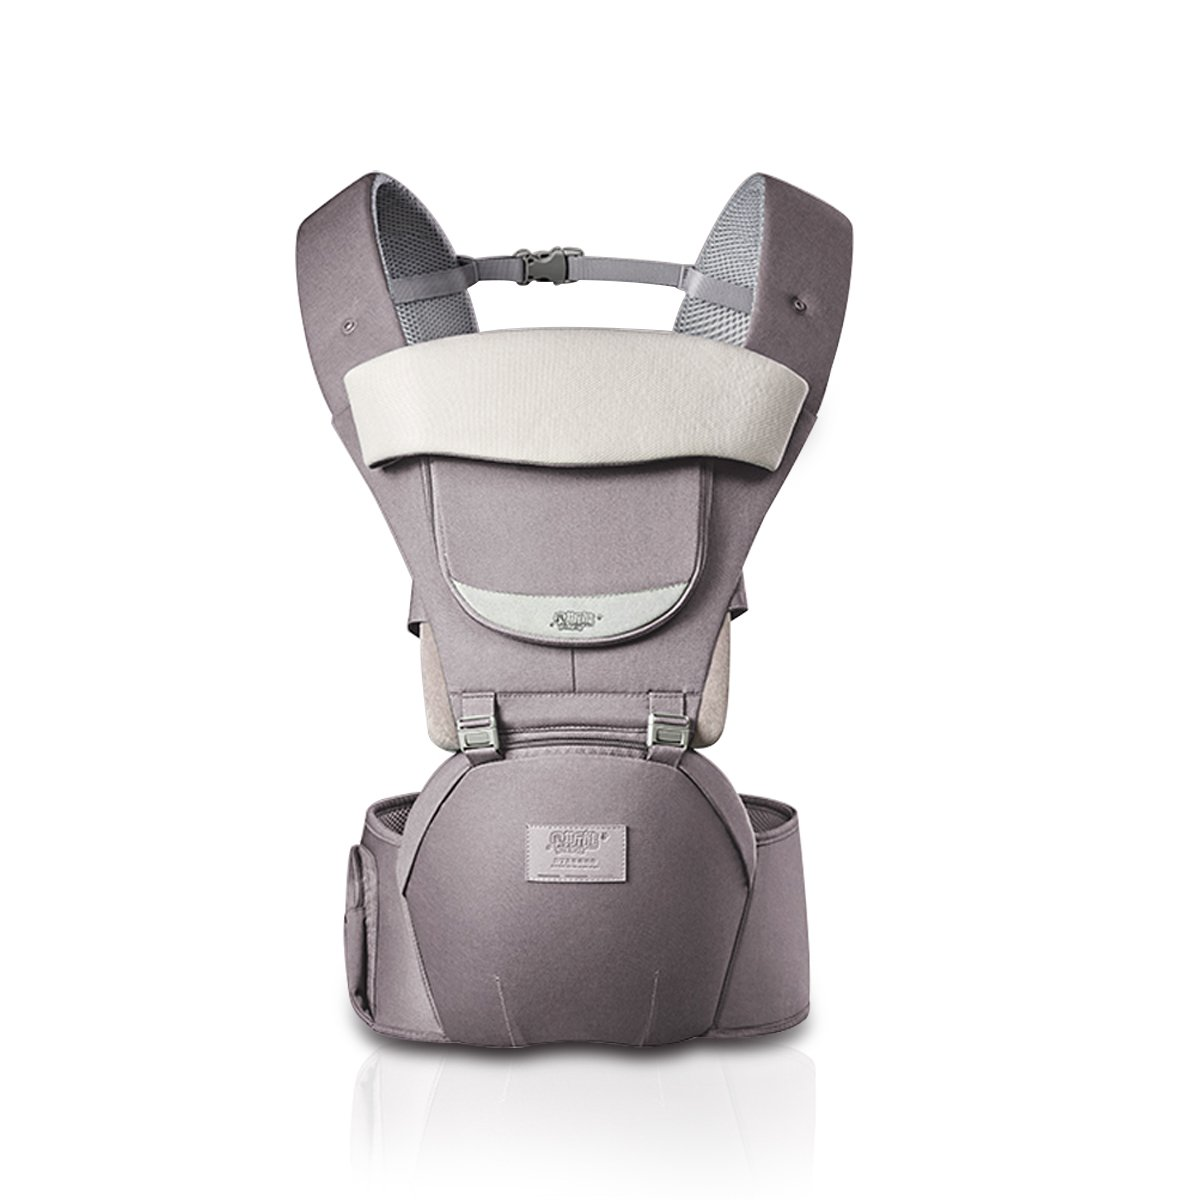 100/% Guarantee and Free DELIVERY,Ideal Gift Gray SONARIN 3 in 1 All Season Breathable Hipseat Baby Carrier,Sun Protection,Ergonomic,Multifunction,Easy Mom,Adapted to Your Childs Growing